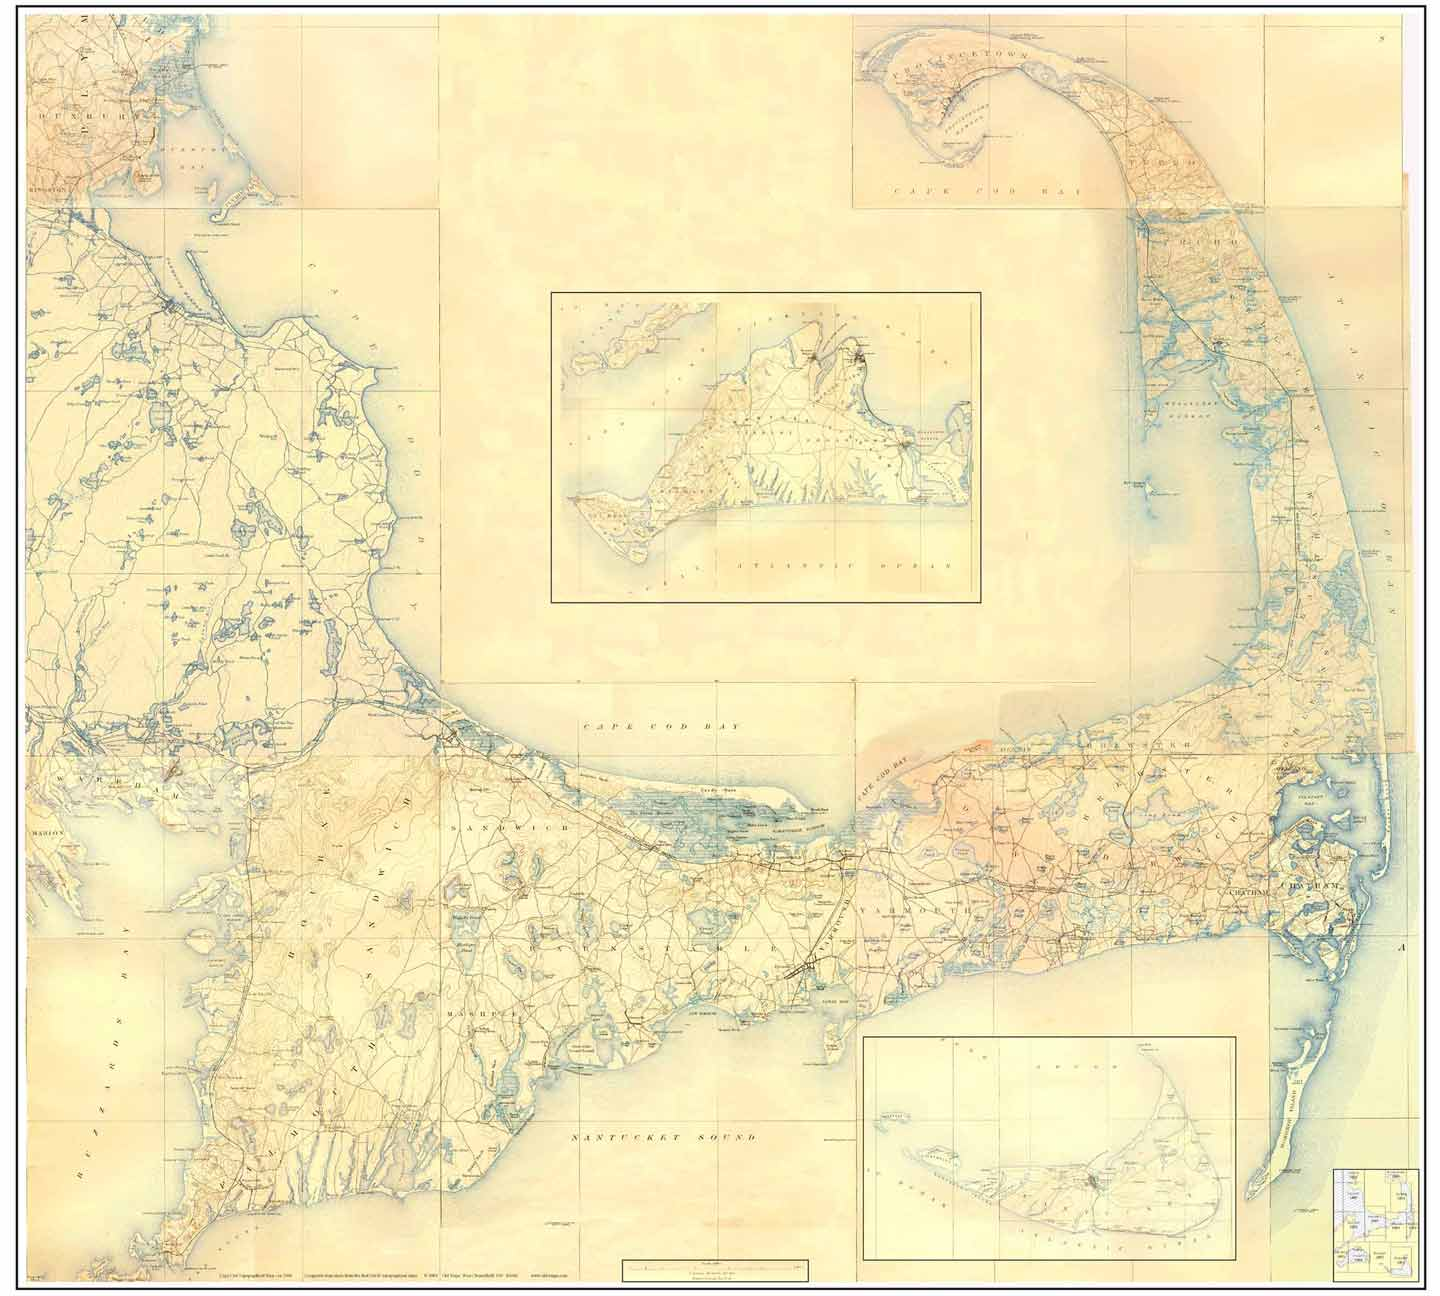 Cape Town Topographic Map